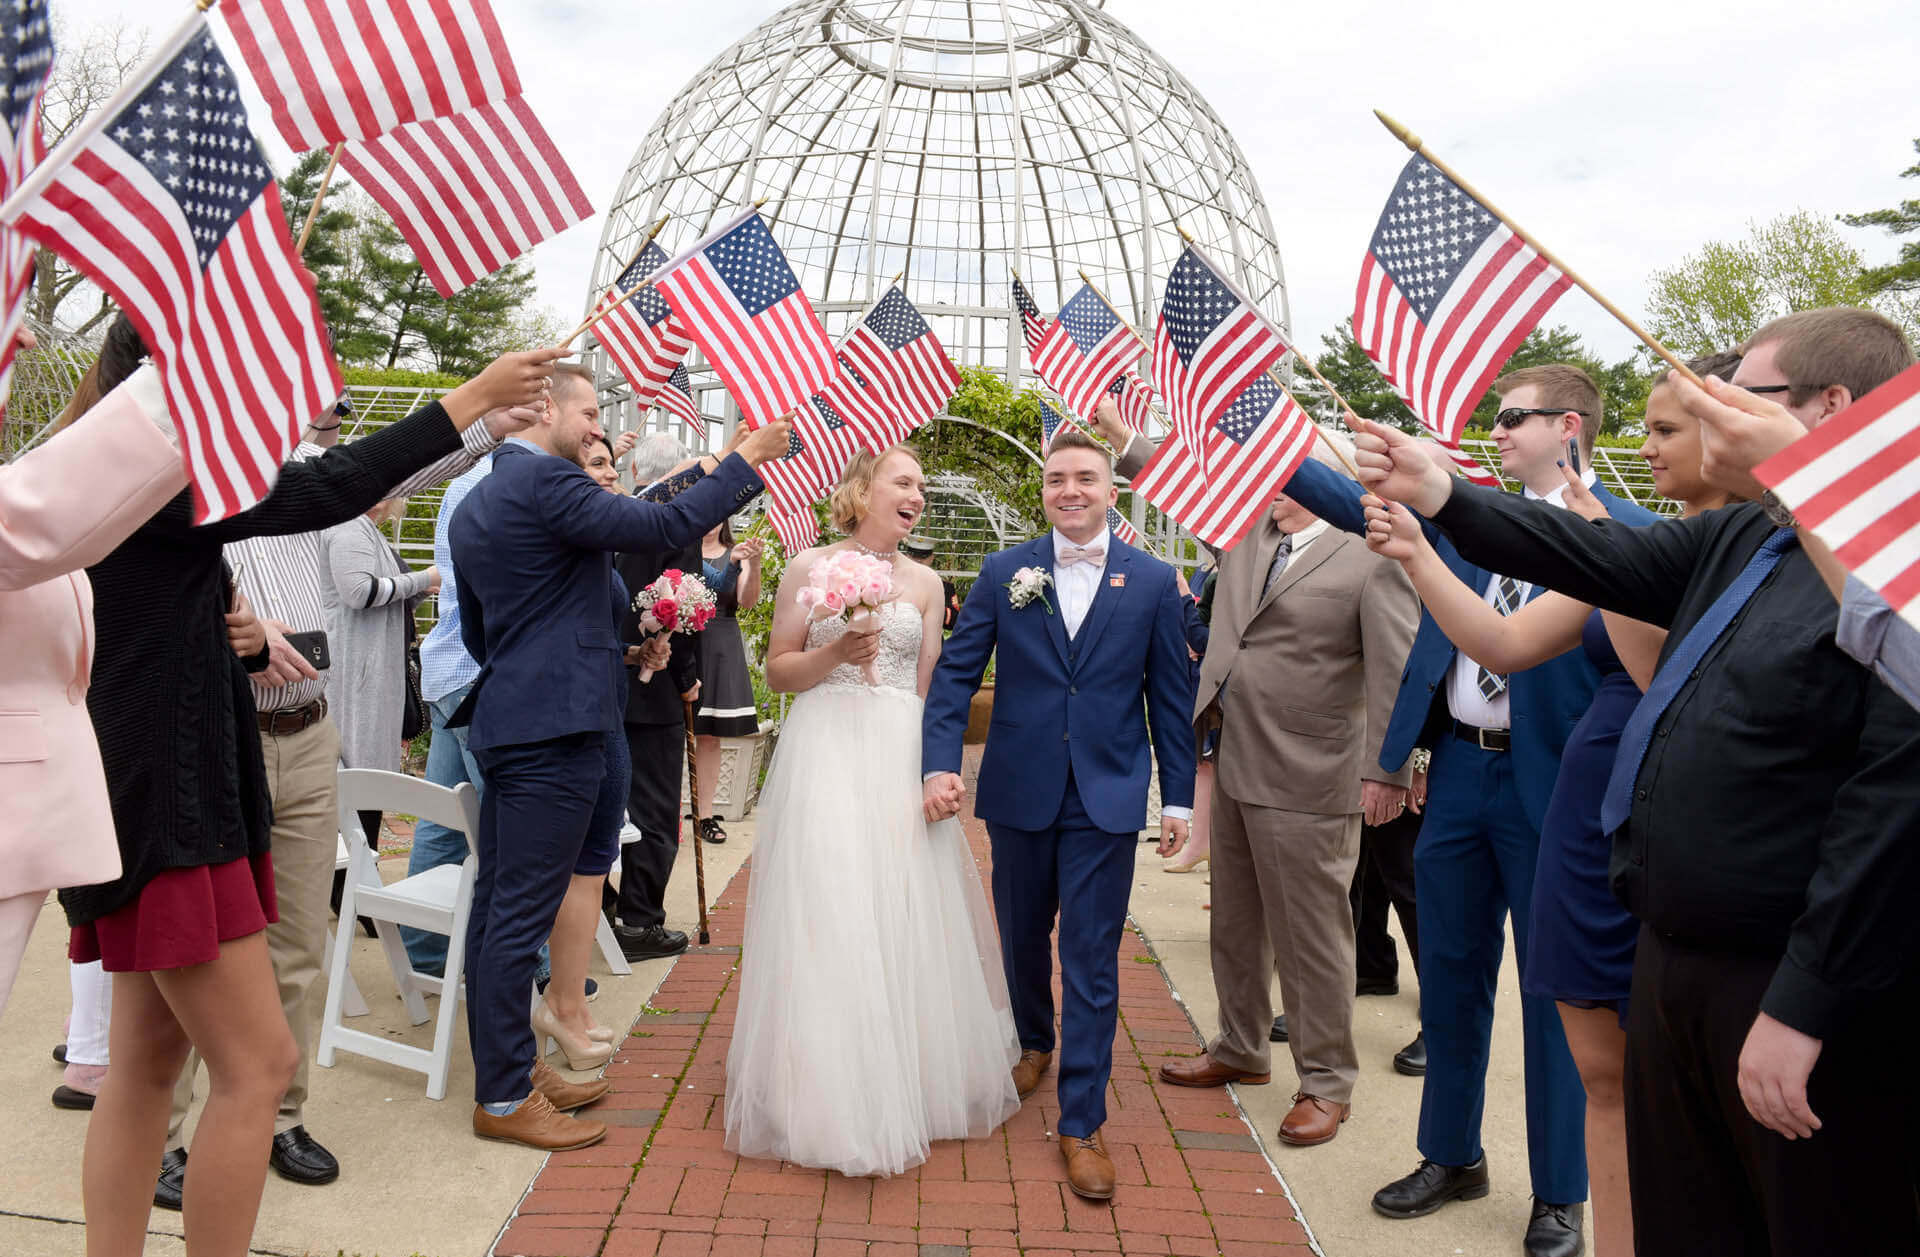 Fresh from Marine bootcamp, this bride walks down a makeshift aisle of American Flags at Taylor's Botanical Garden and Conservatory.